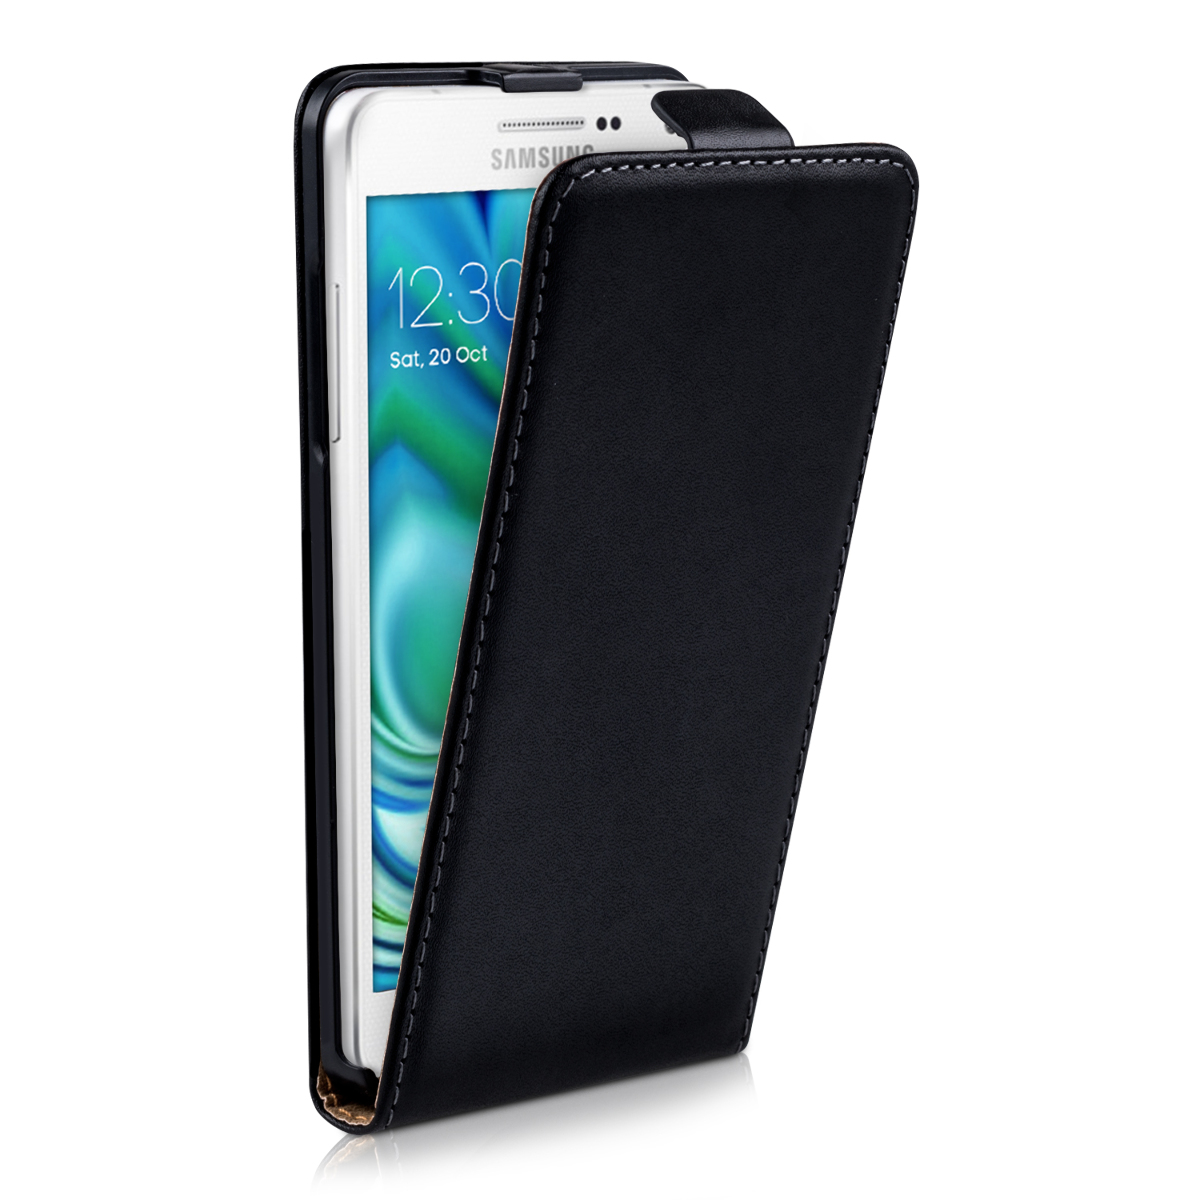 kwmobile-SYNTHETIC-LEATHER-BAG-FLIP-STYLE-FOR-SAMSUNG-GALAXY-A5-2015-CASE